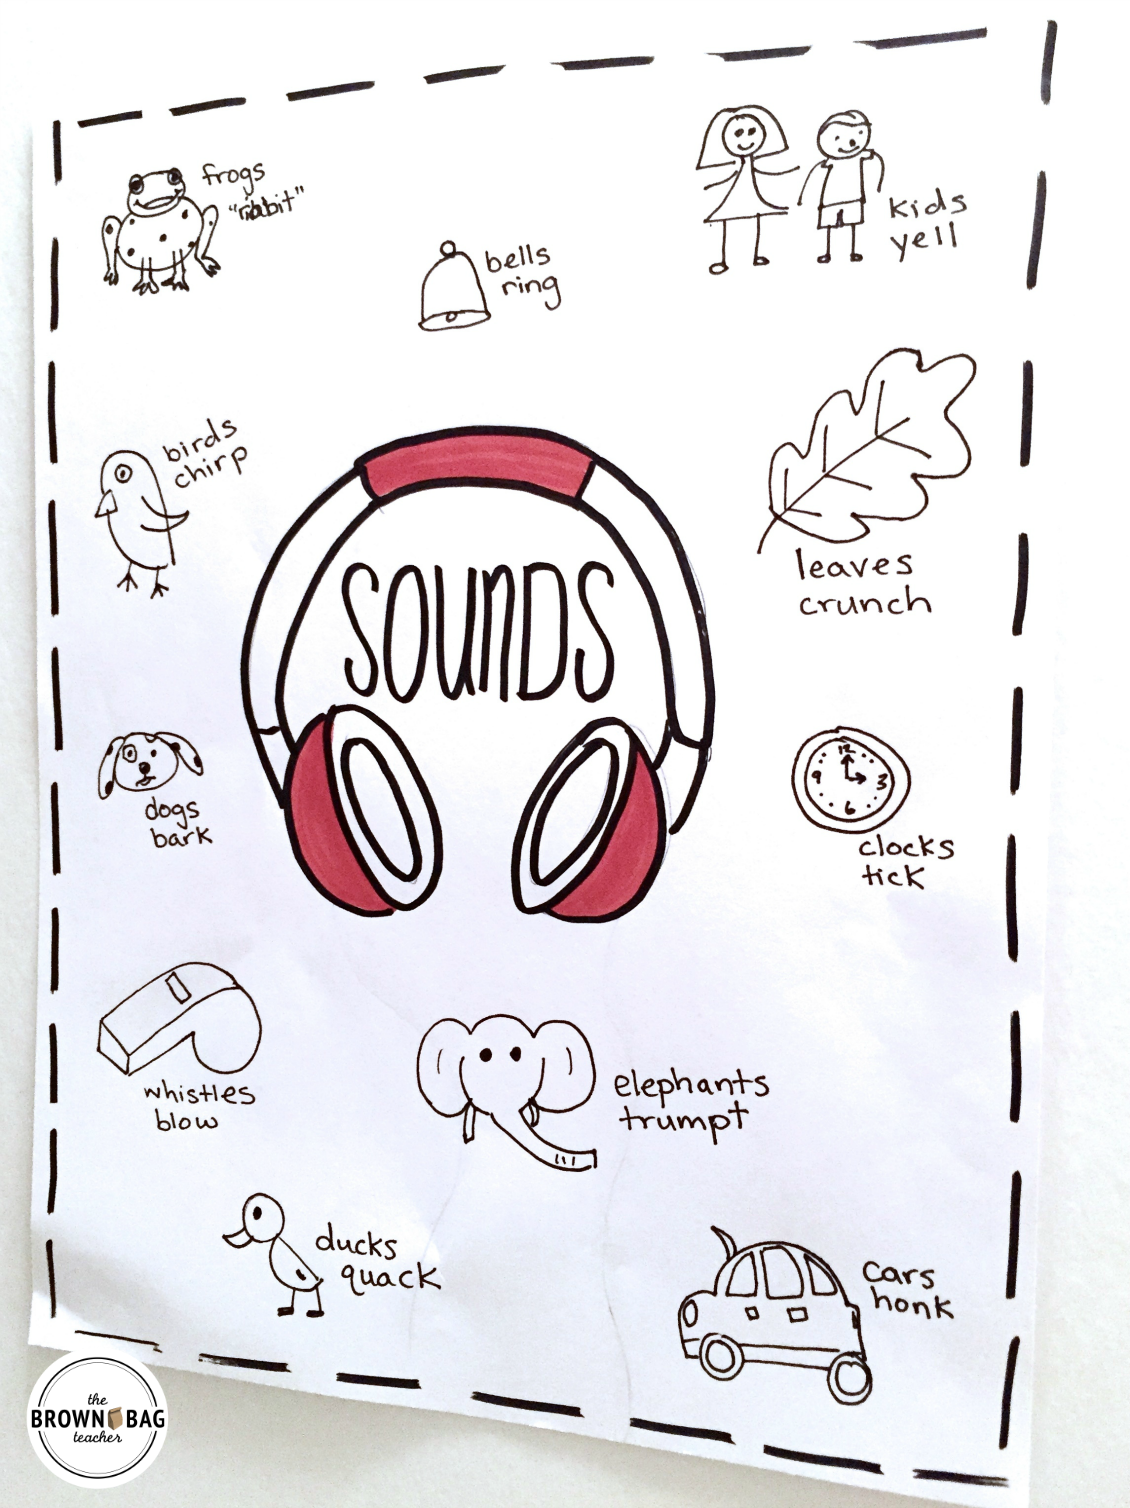 medium resolution of Sound: 1st Grade Science - The Brown Bag Teacher